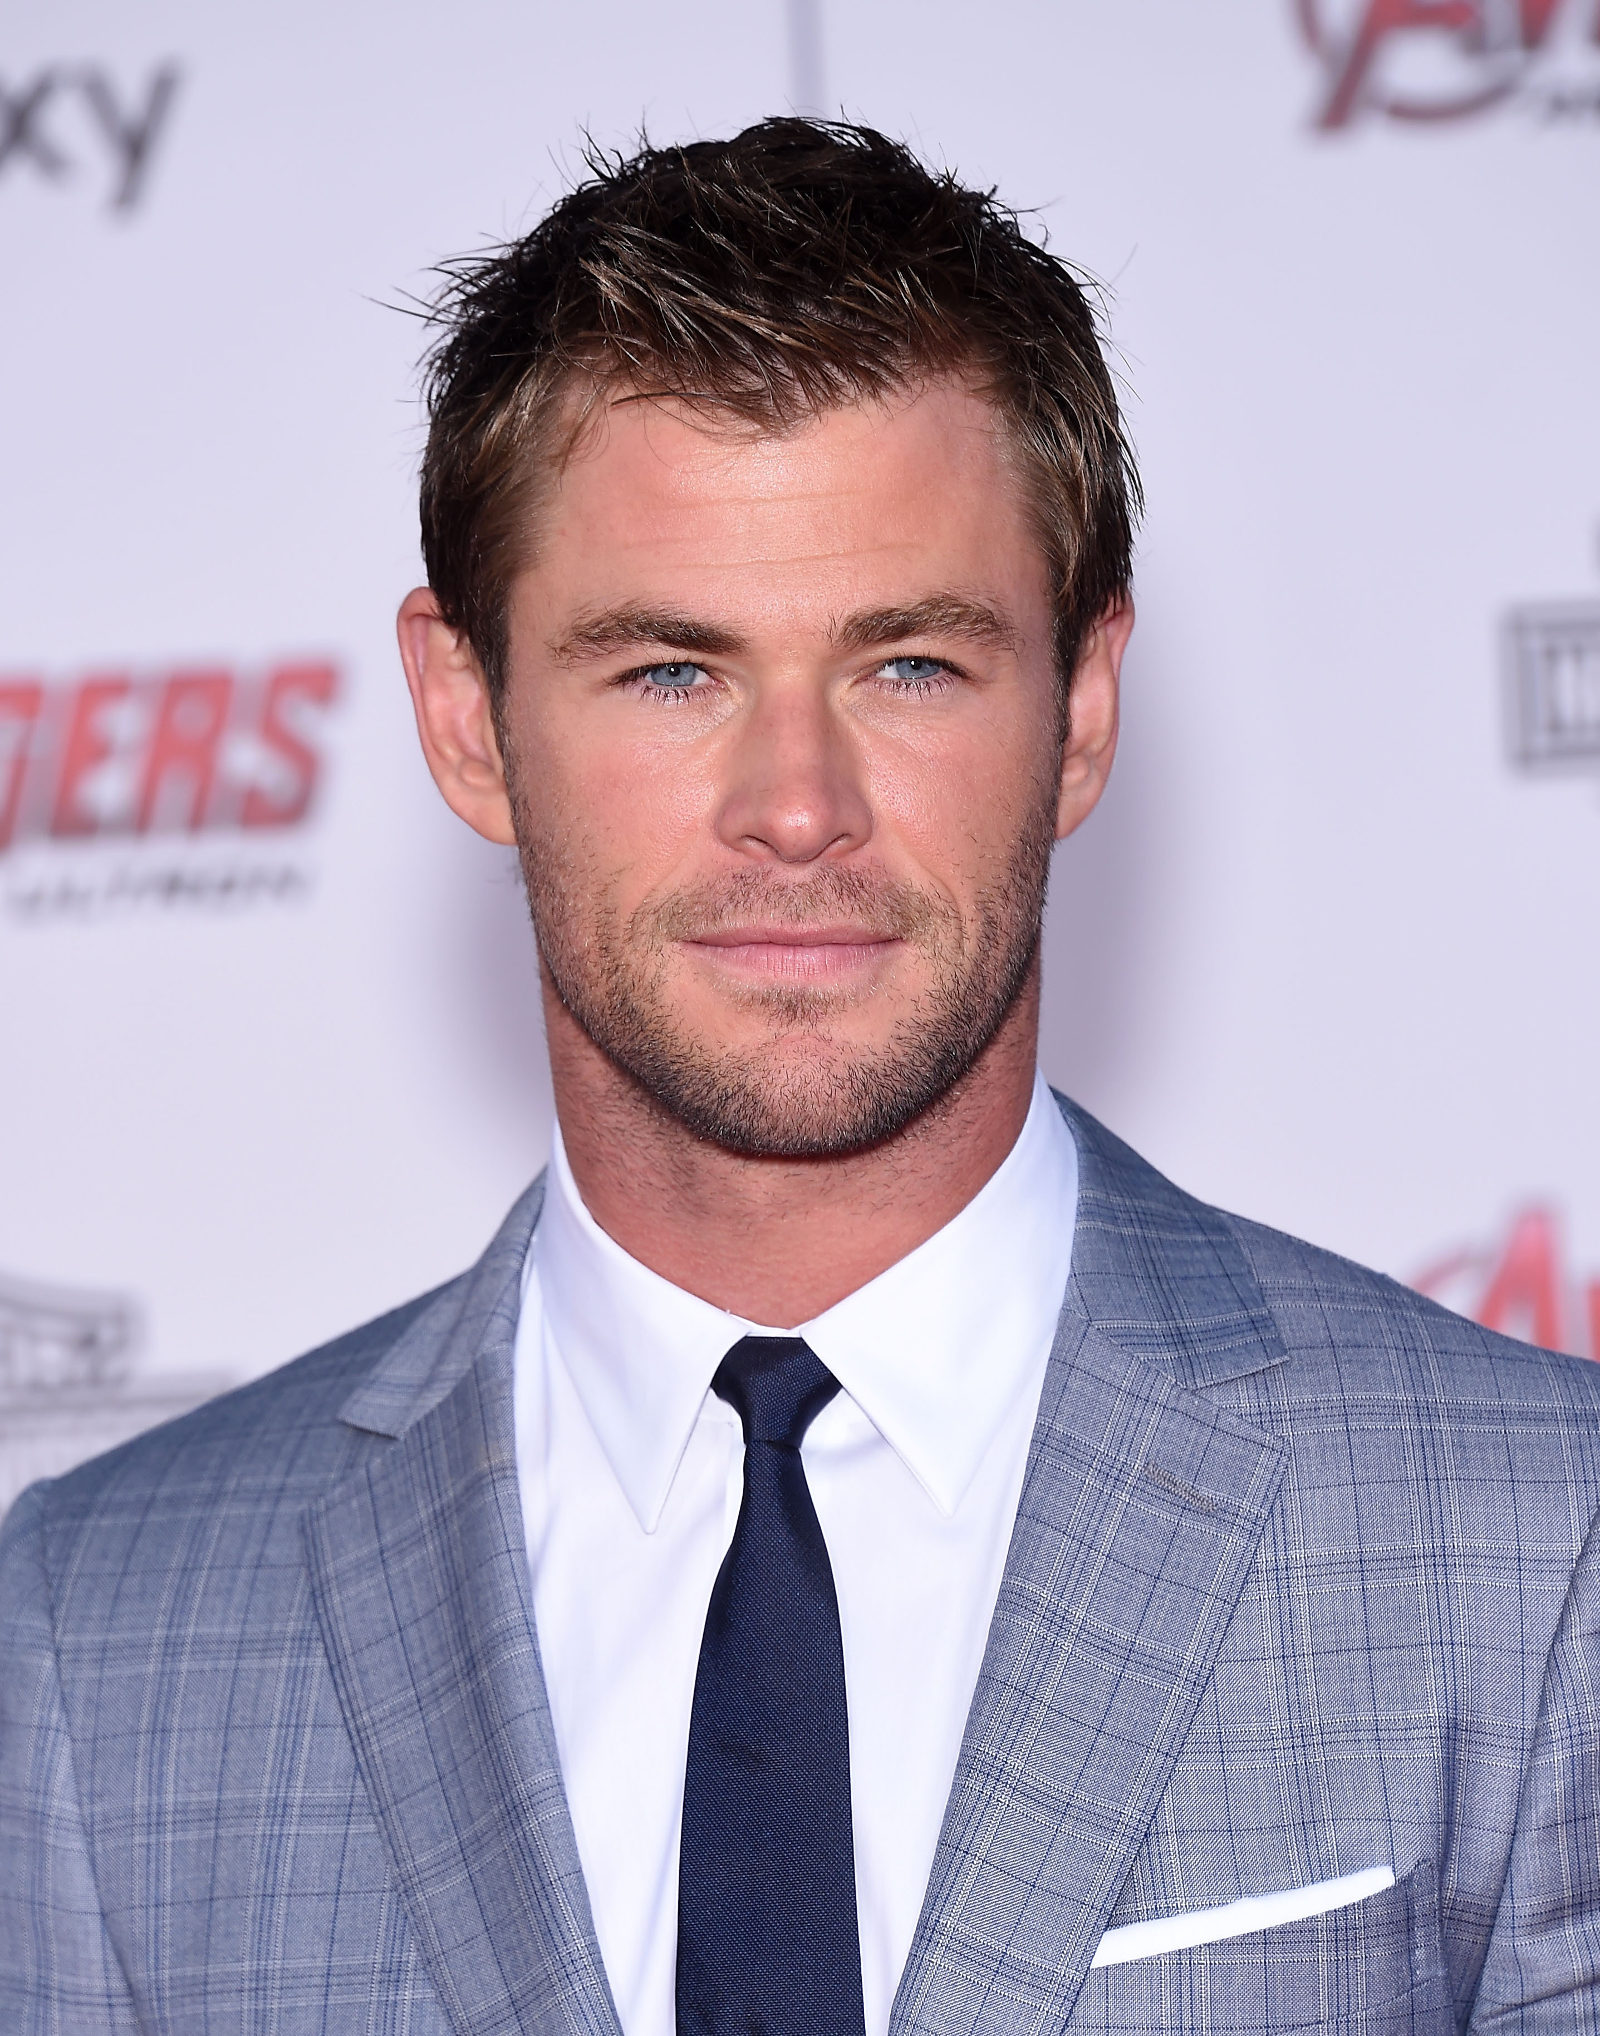 Chris Hemsworth - Widow's Peak - Short Spiky Hairstyle